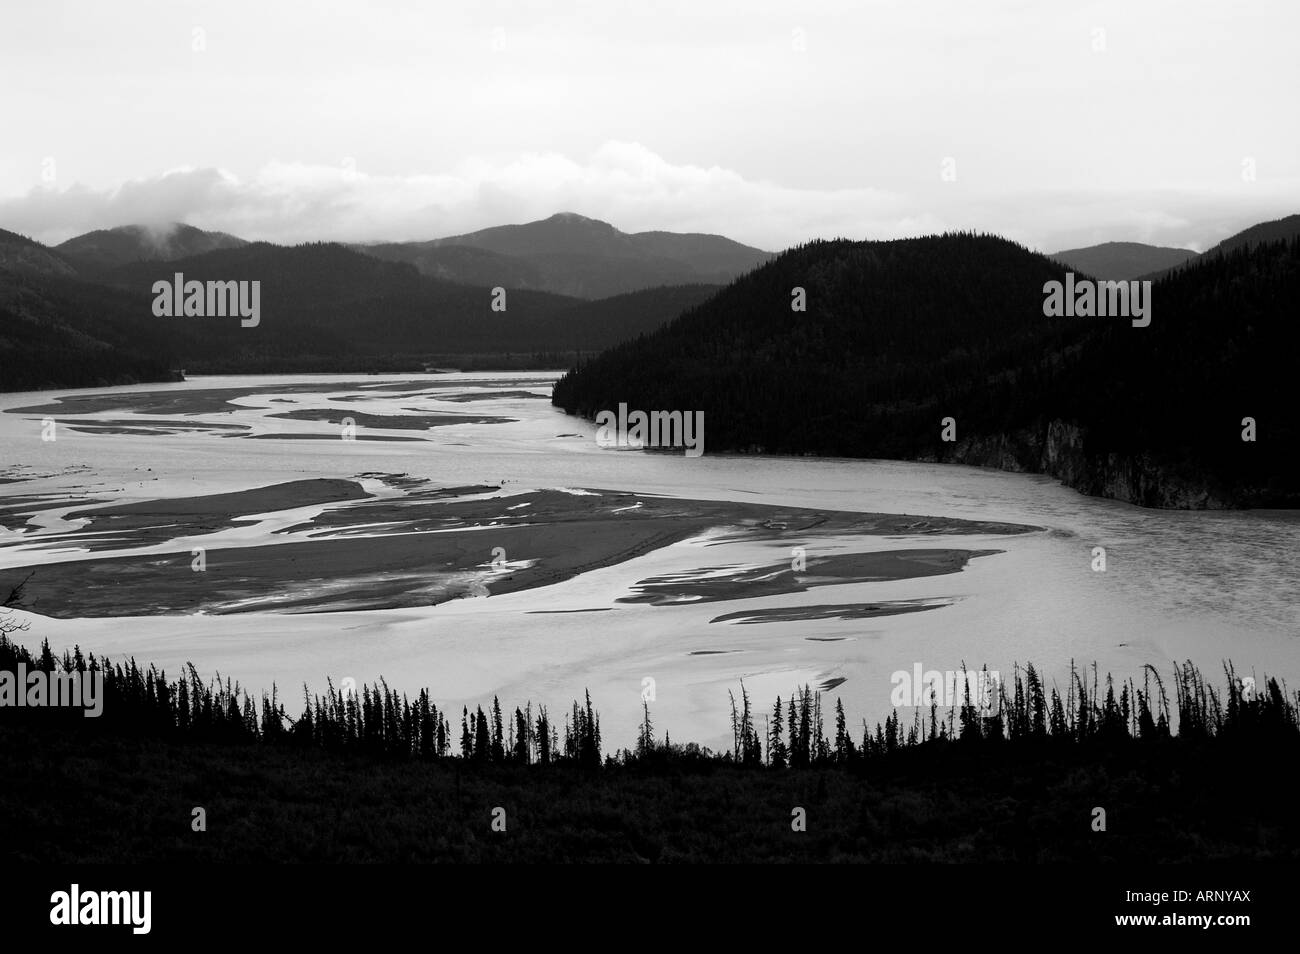 The mighty Copper River. Wrangell - St. Elias National Park, Alaska. - Stock Image